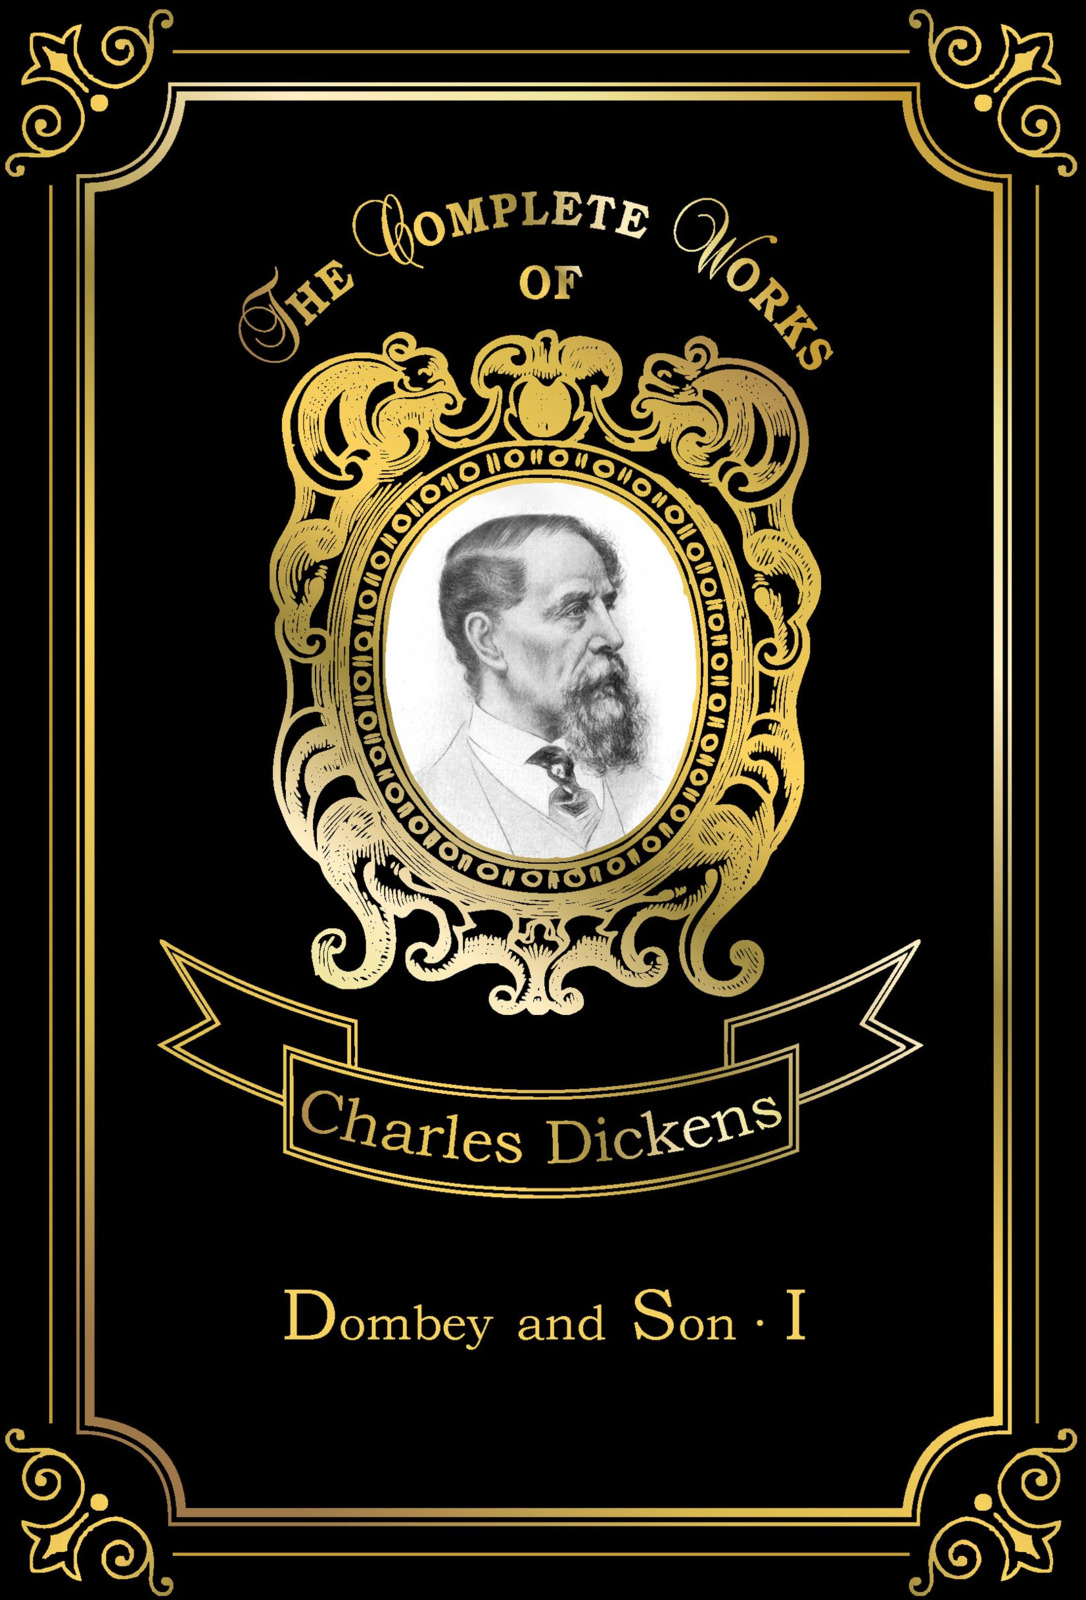 Charles Dickens Dombey and Son: Book 1